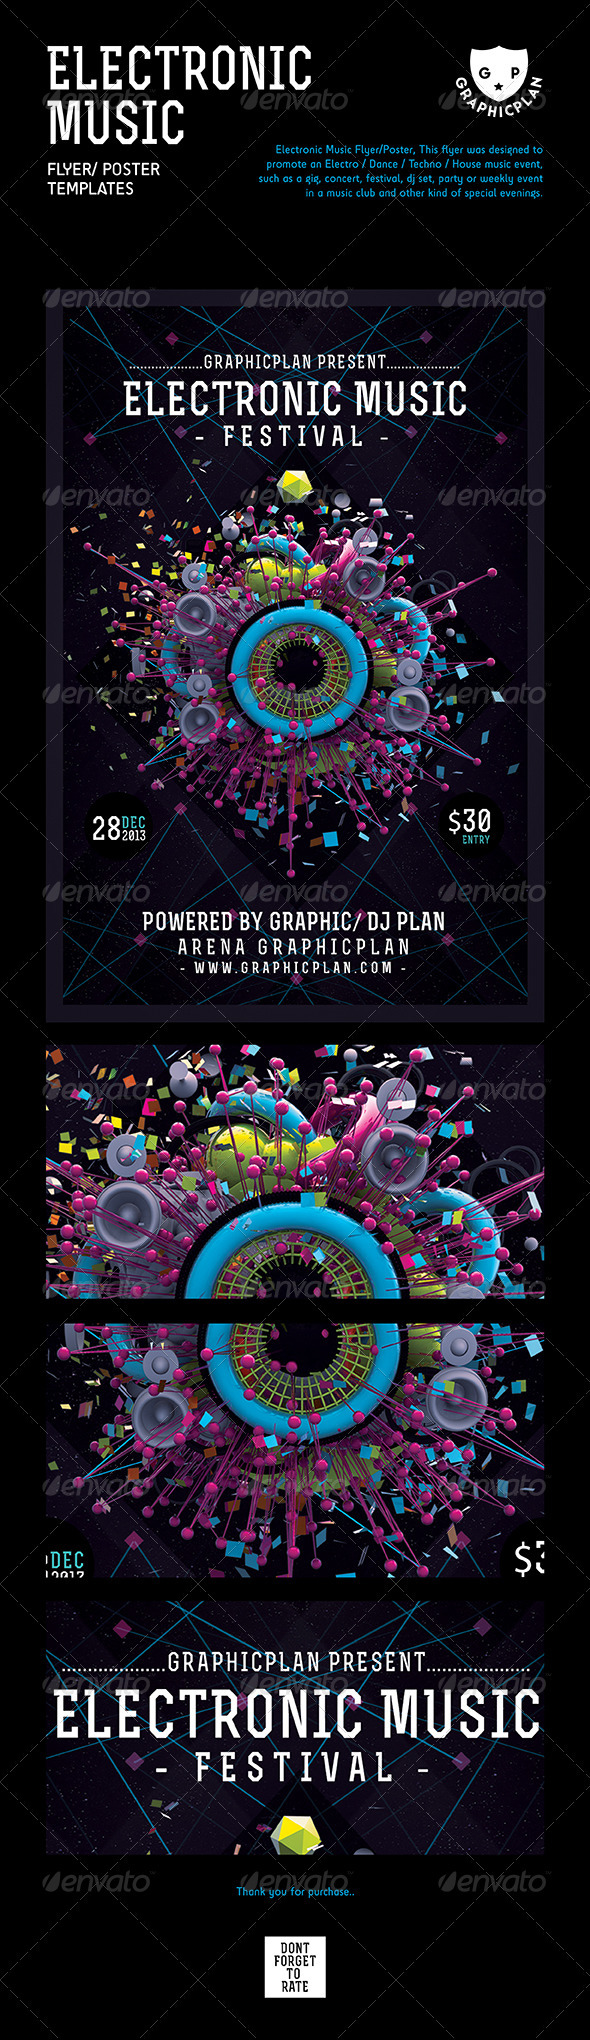 GraphicRiver Electronic Music Flyer Poster 3728301